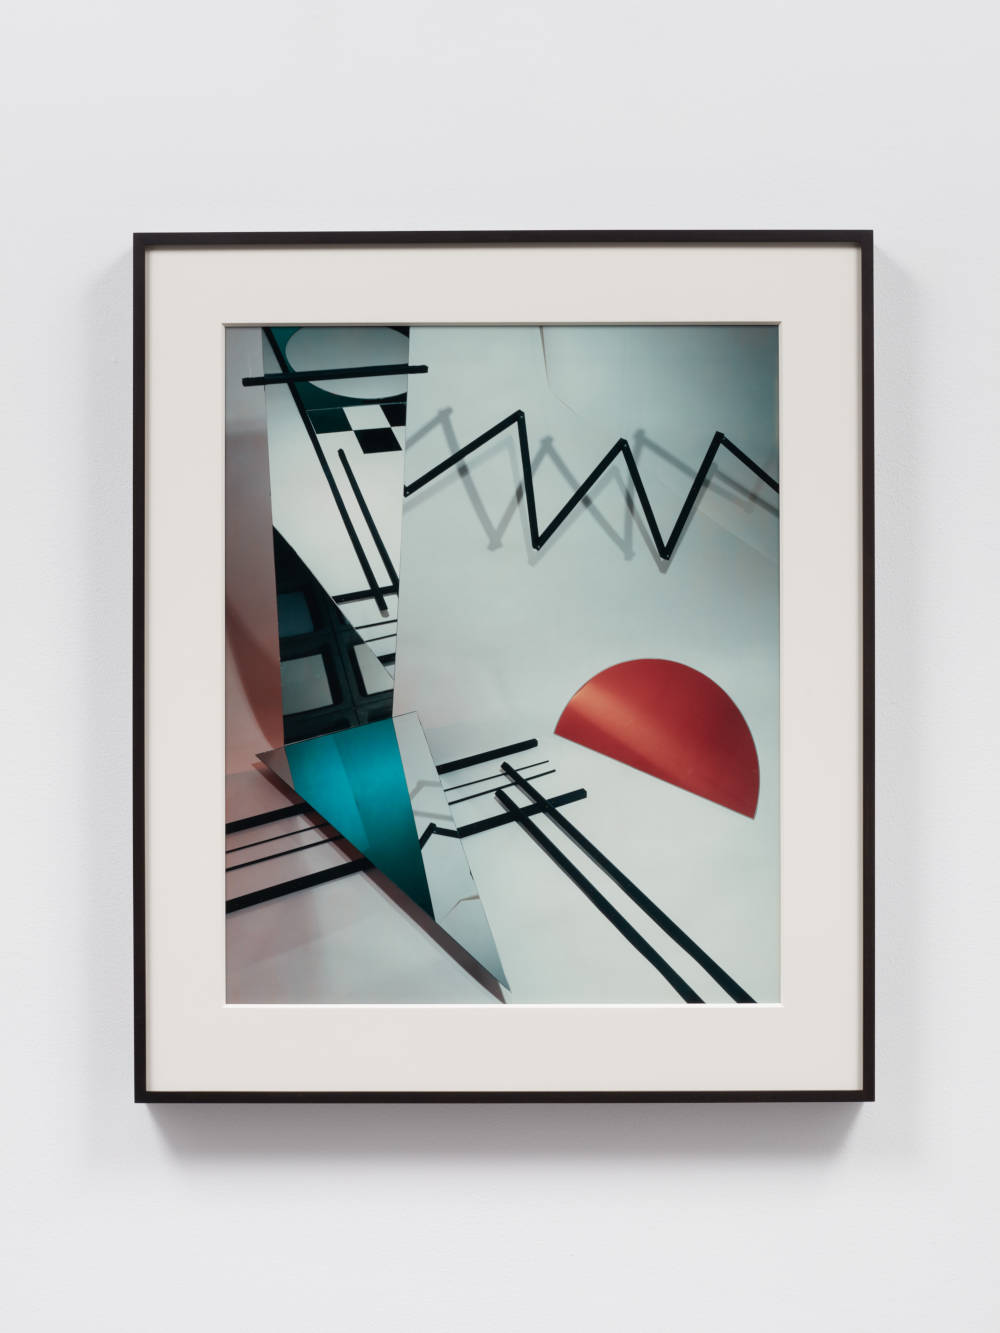 Barbara Kasten, Construct PC III-A, 1981. Polaroid 61 x 50.8 cm (24 x 20 in.) Version of 9 plus 3 AP, AP 2. Courtesy of the artist and Bortolami, New York